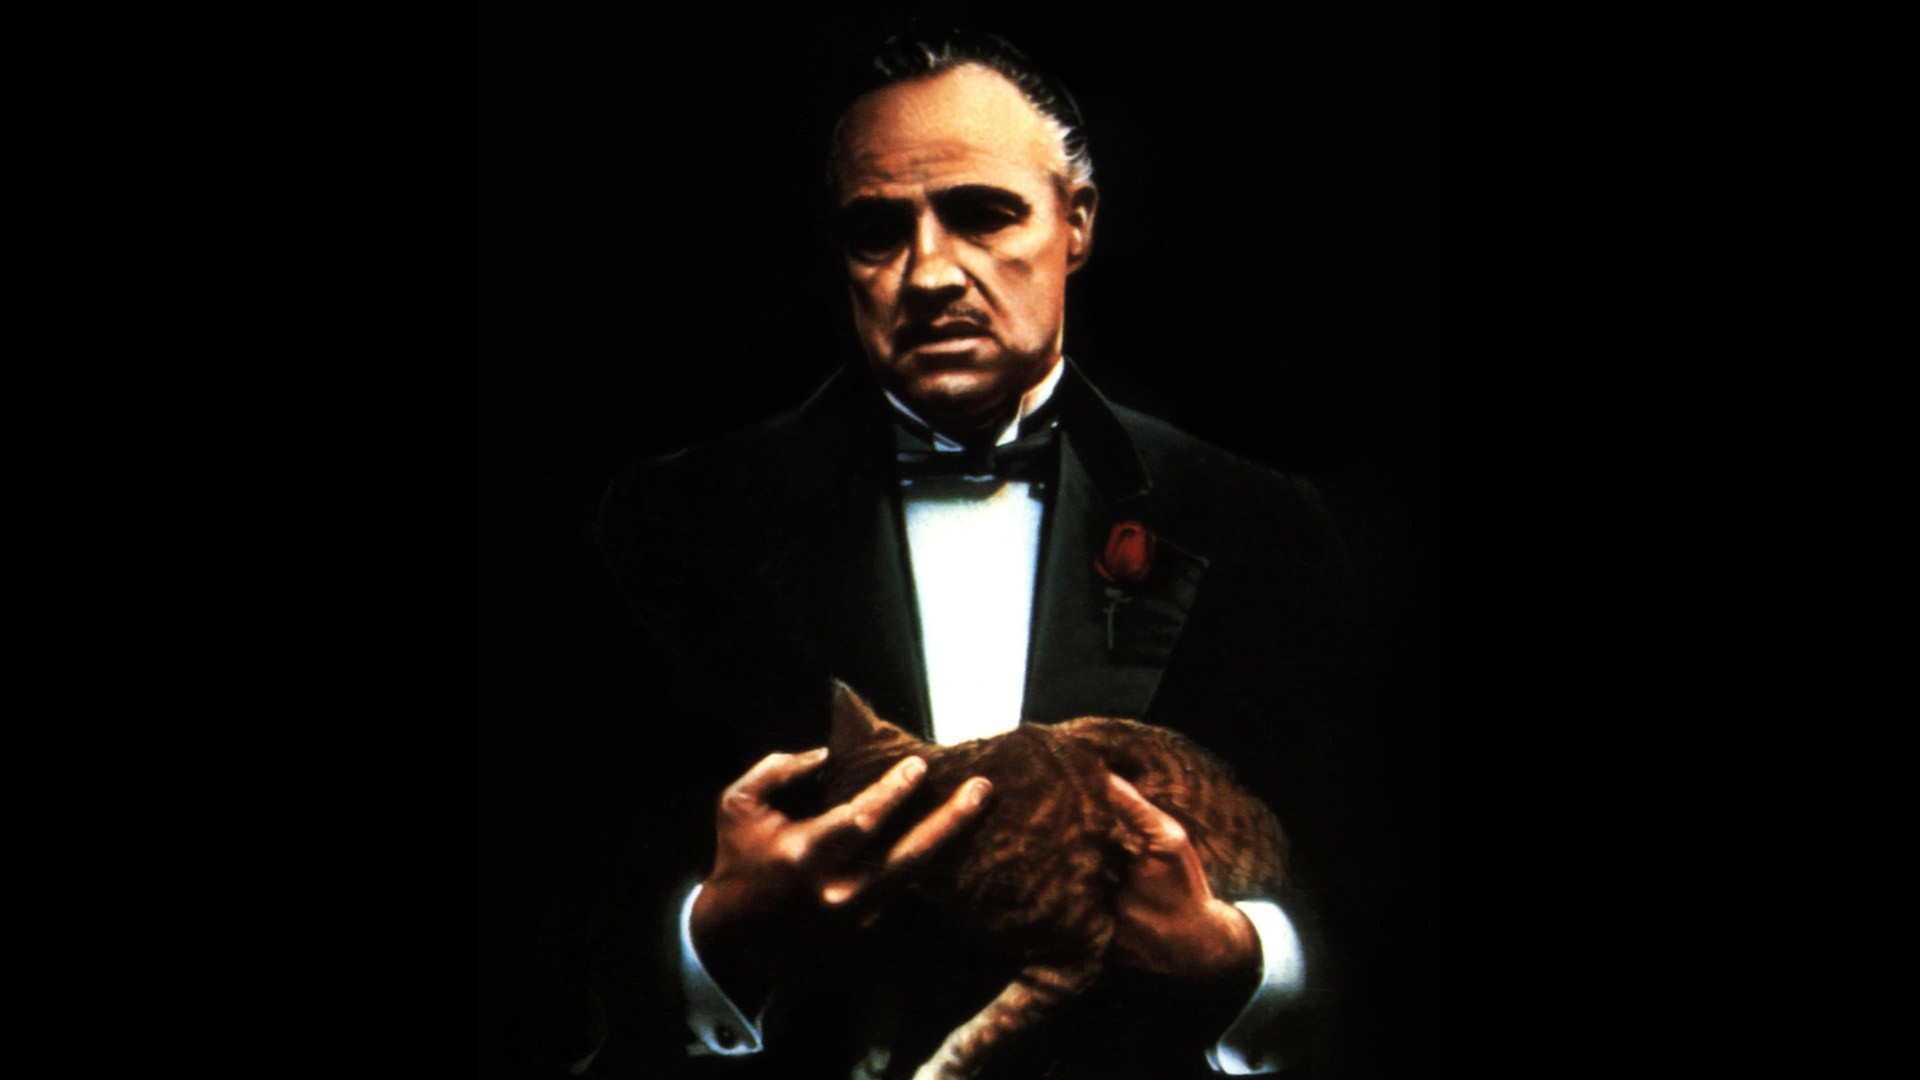 The Godfather Wallpaper 1920x1080 The Godfather Vito Corleone 1920x1080